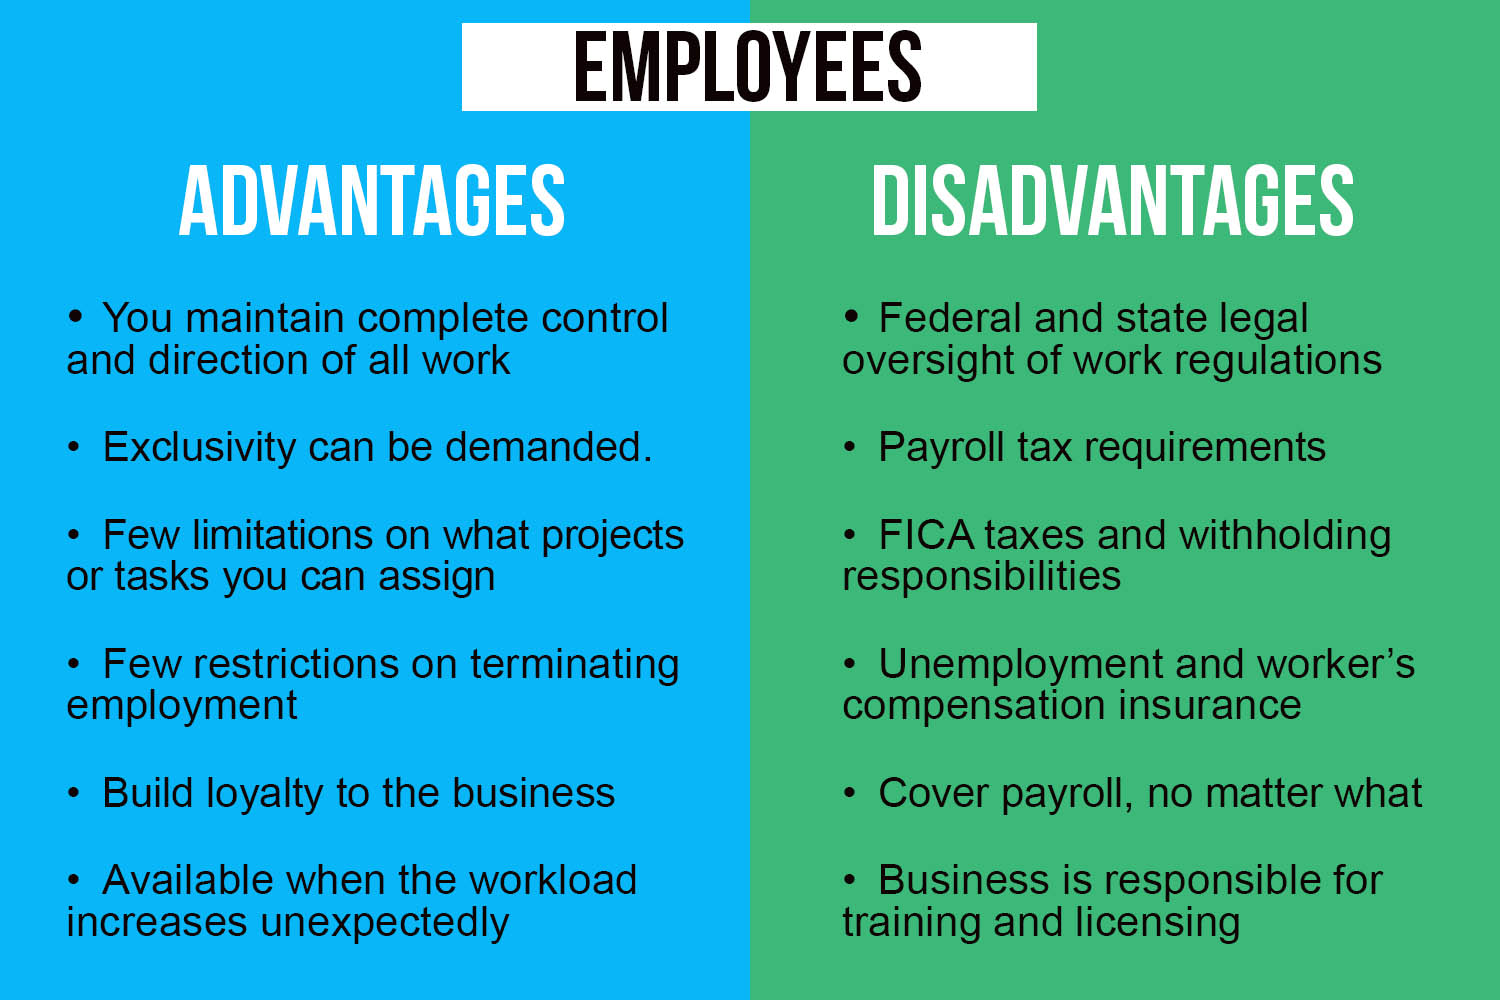 comparison of advantages and disadvantages of using employees